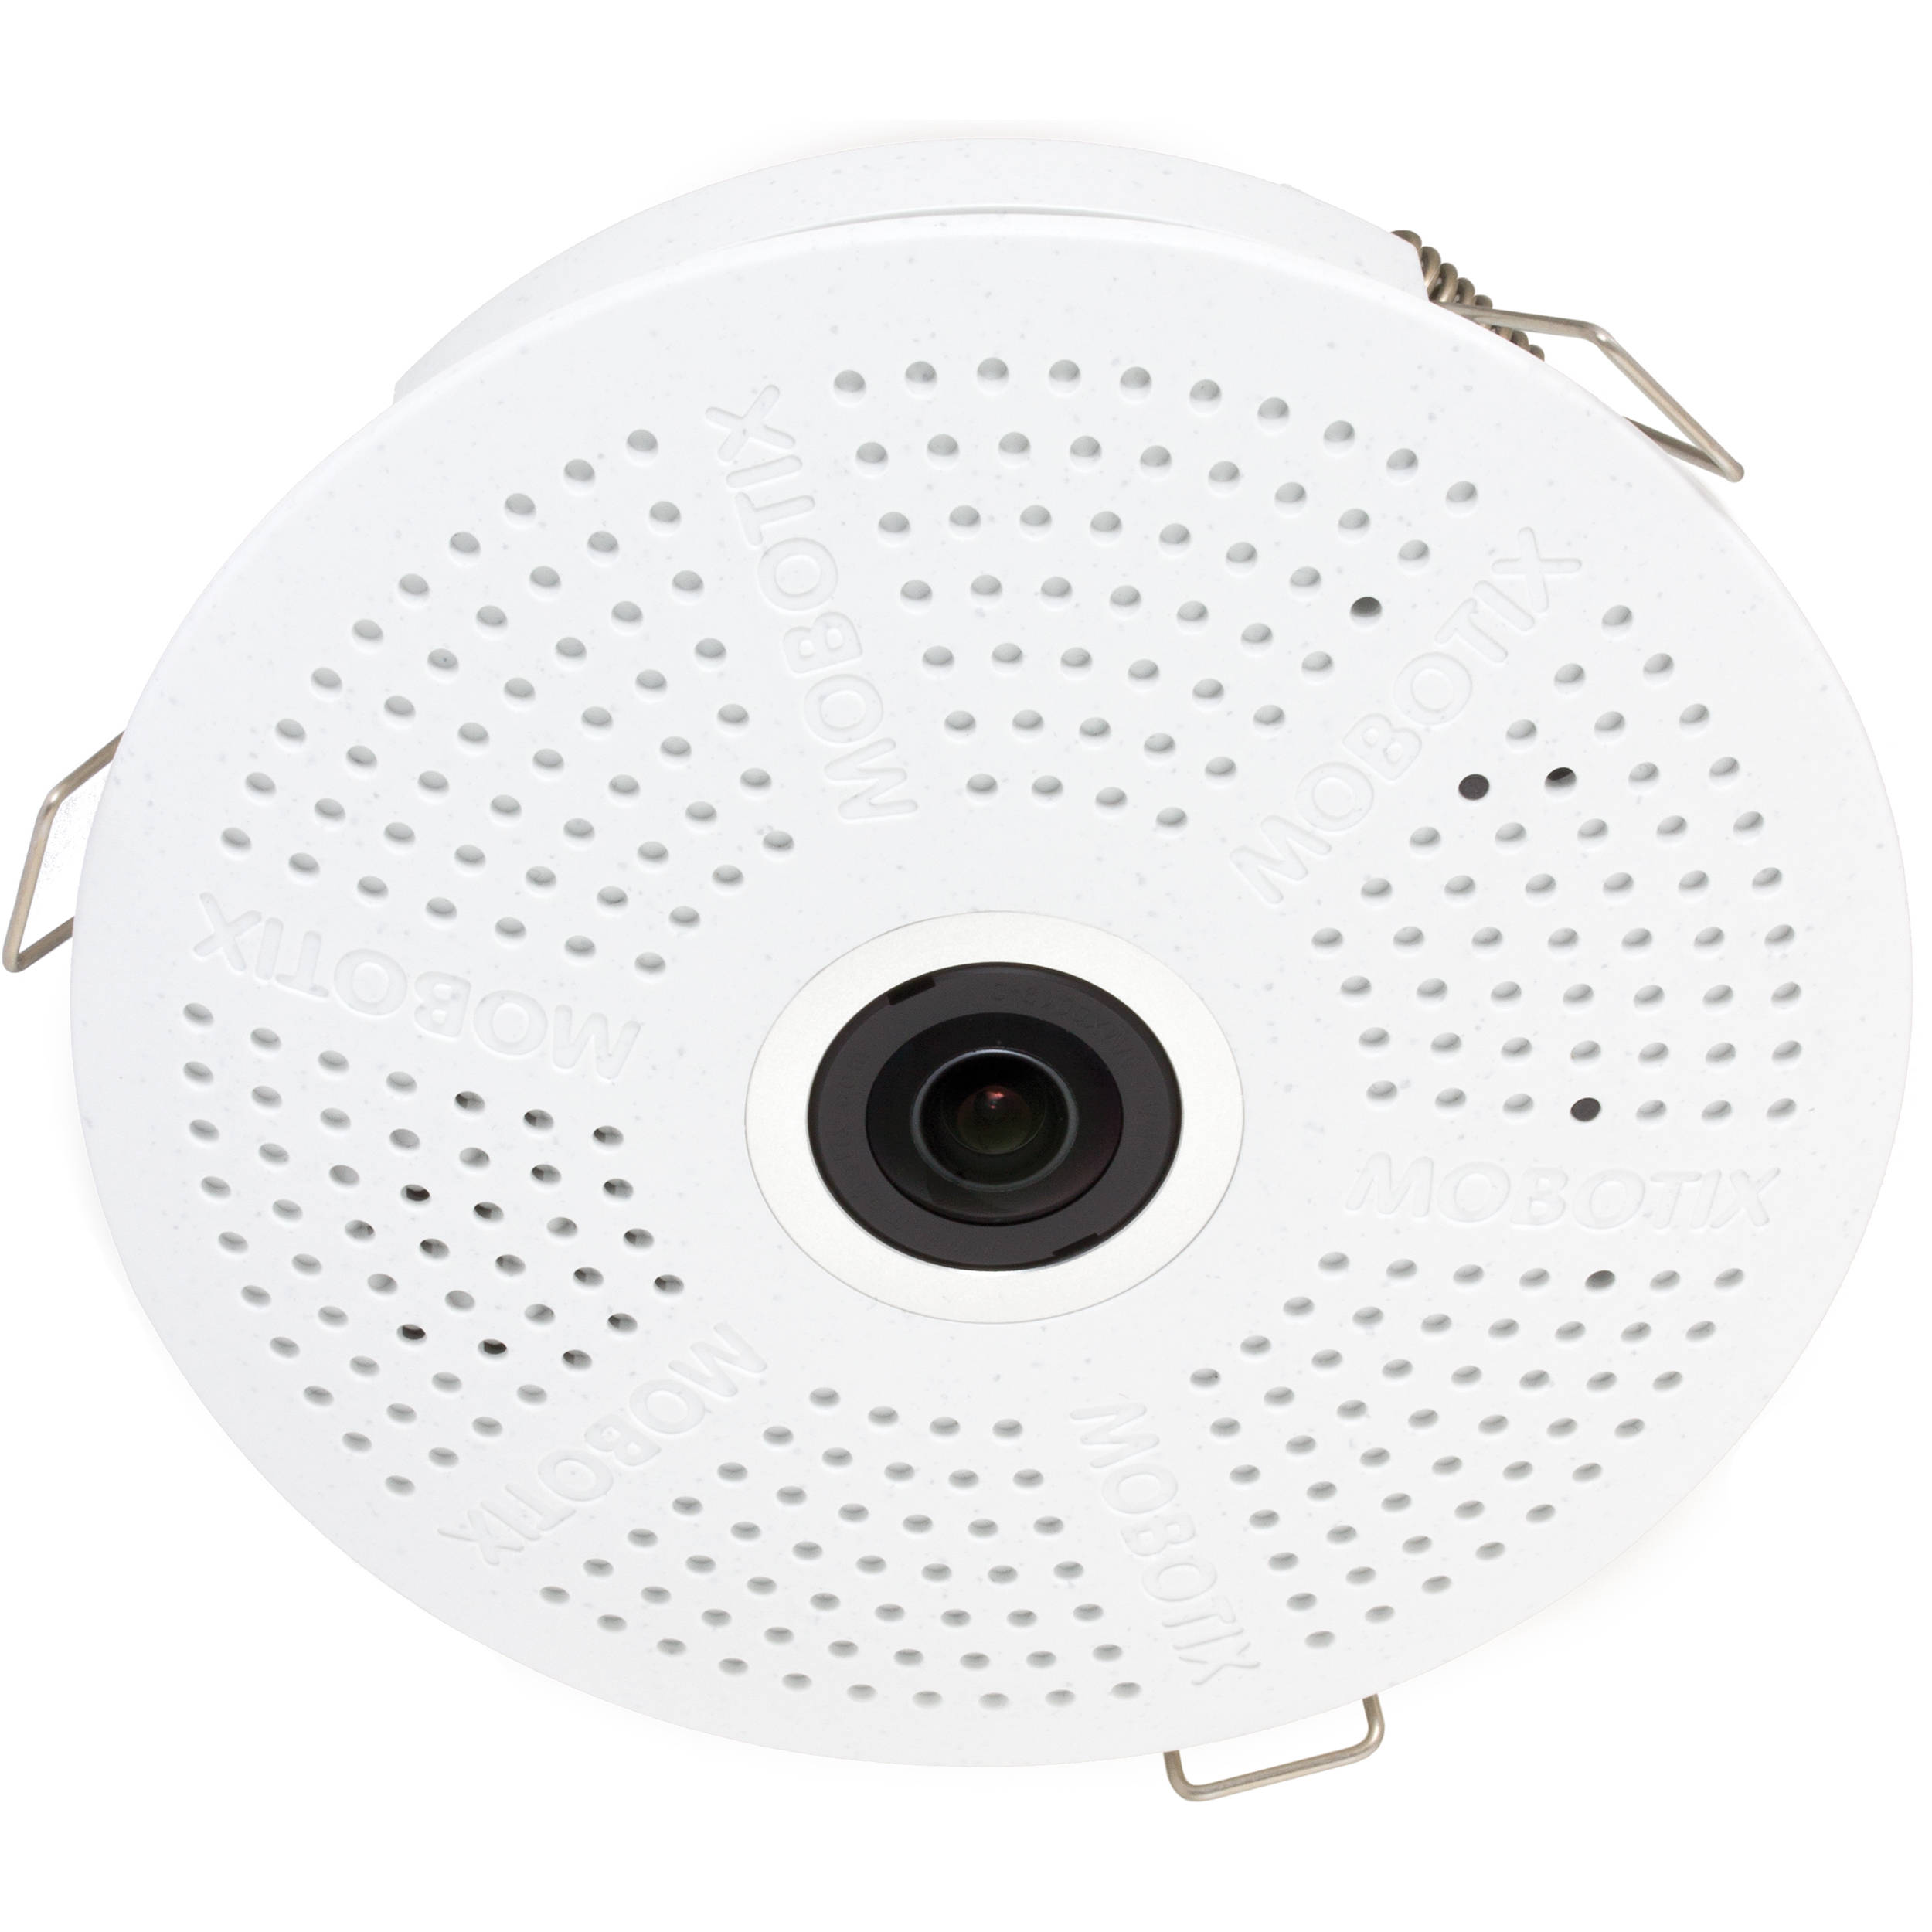 Mobotix Hemispheric C25 Series Mx C25 D12 Pw 5mp Mx C25 D12 Pw